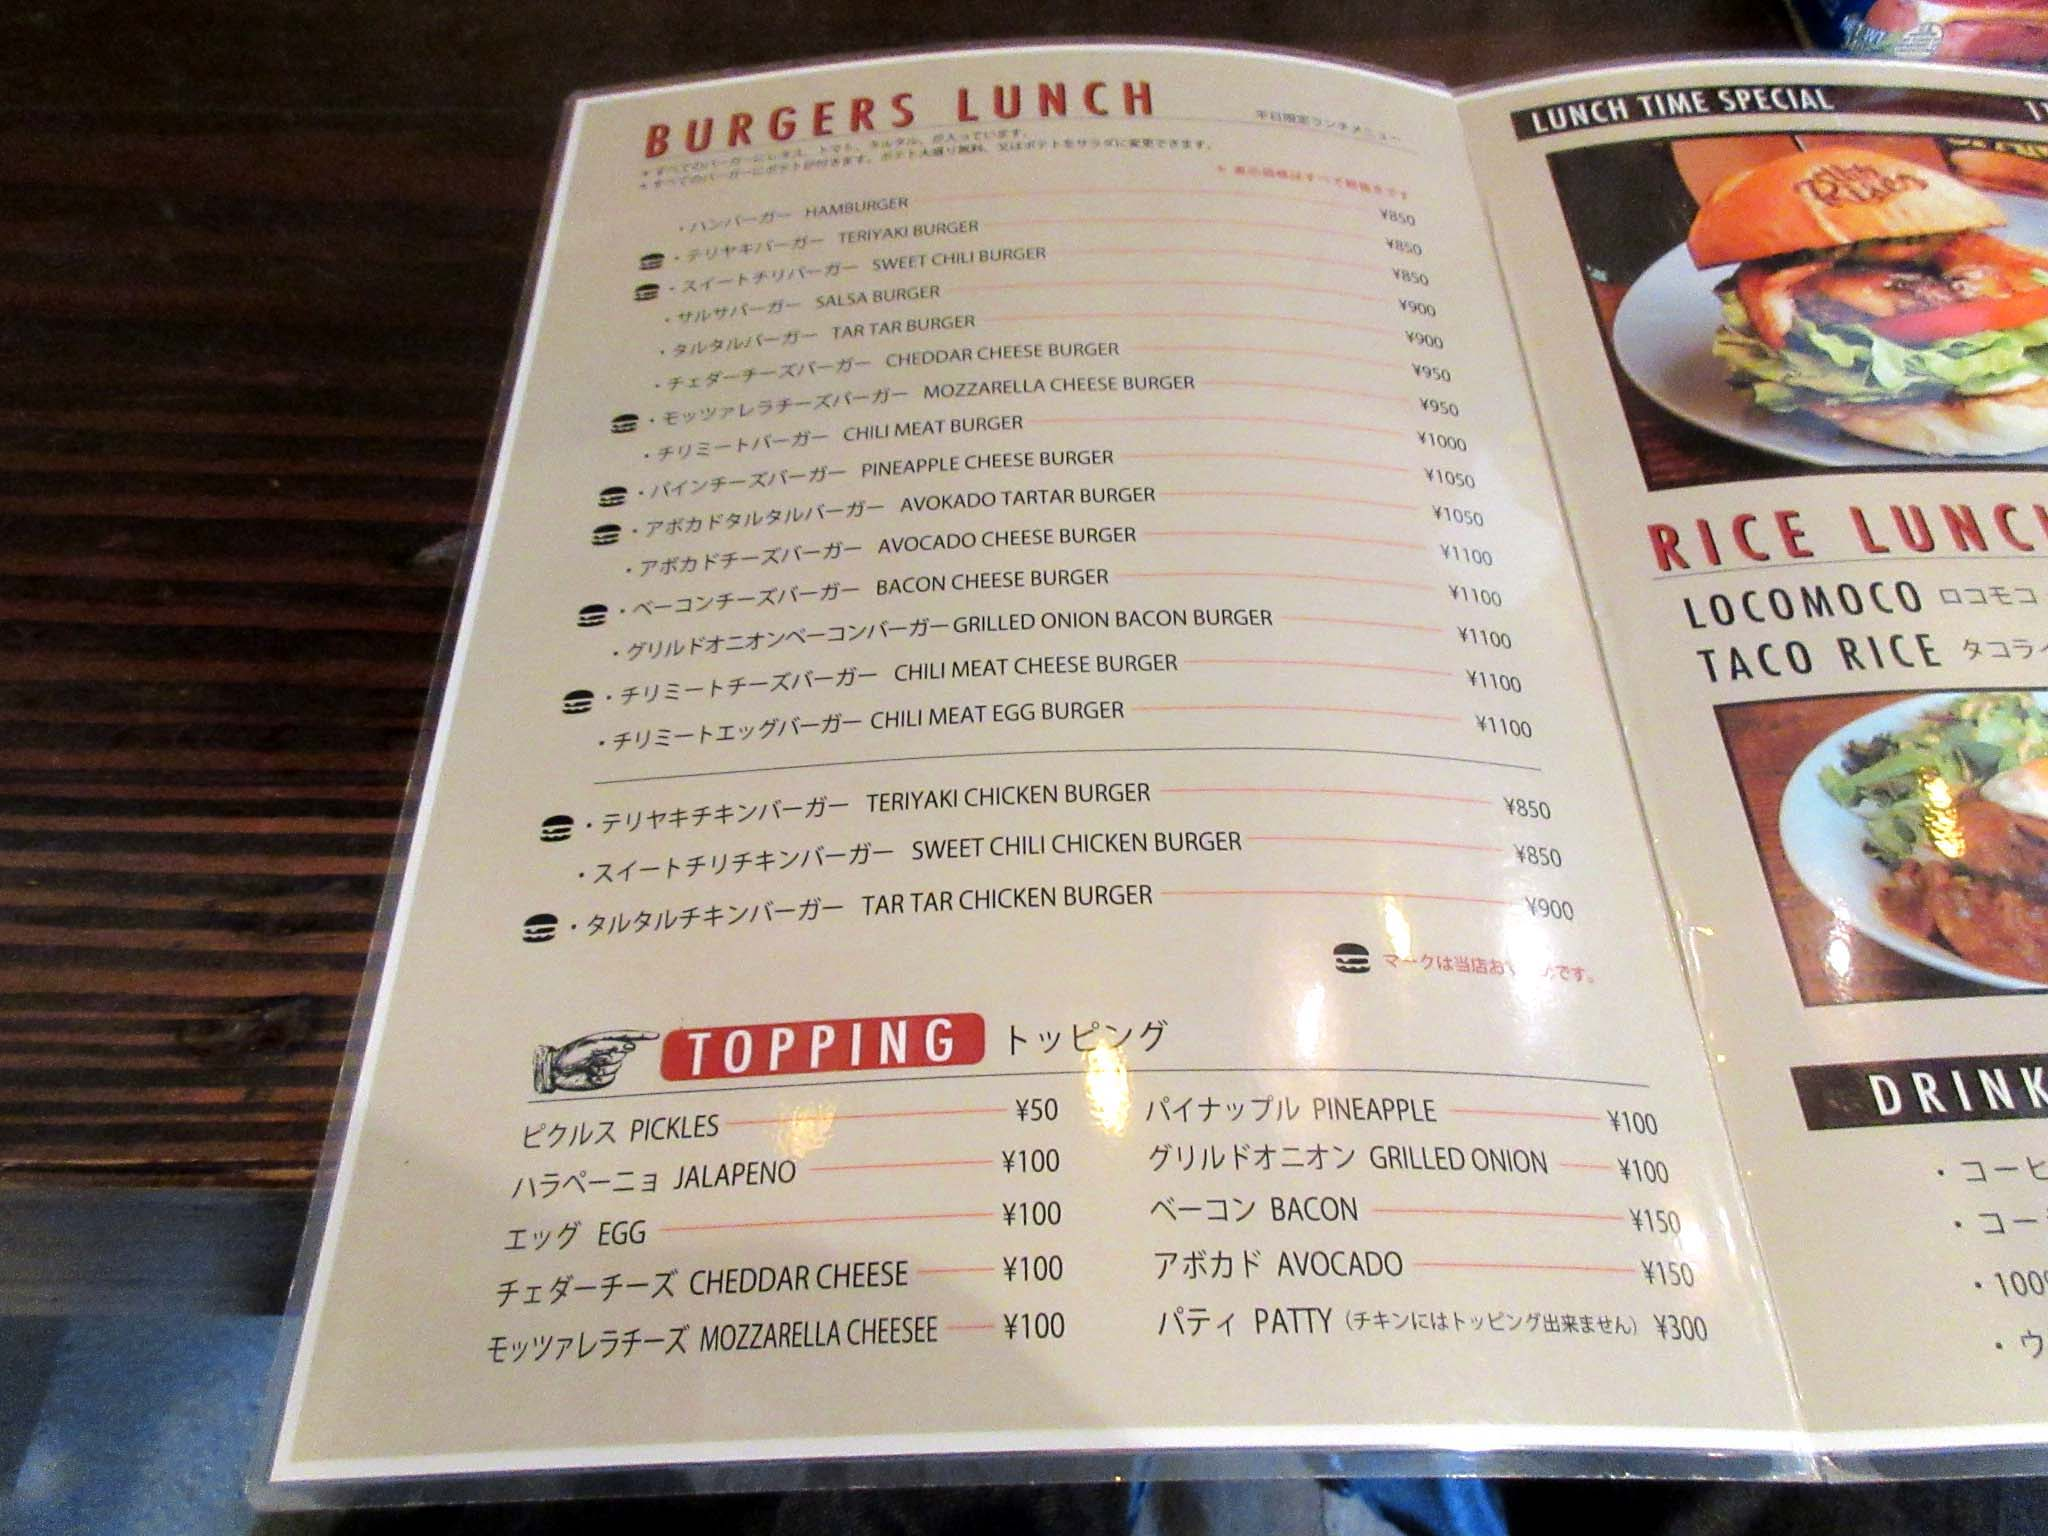 BURGER LUNCH MENU